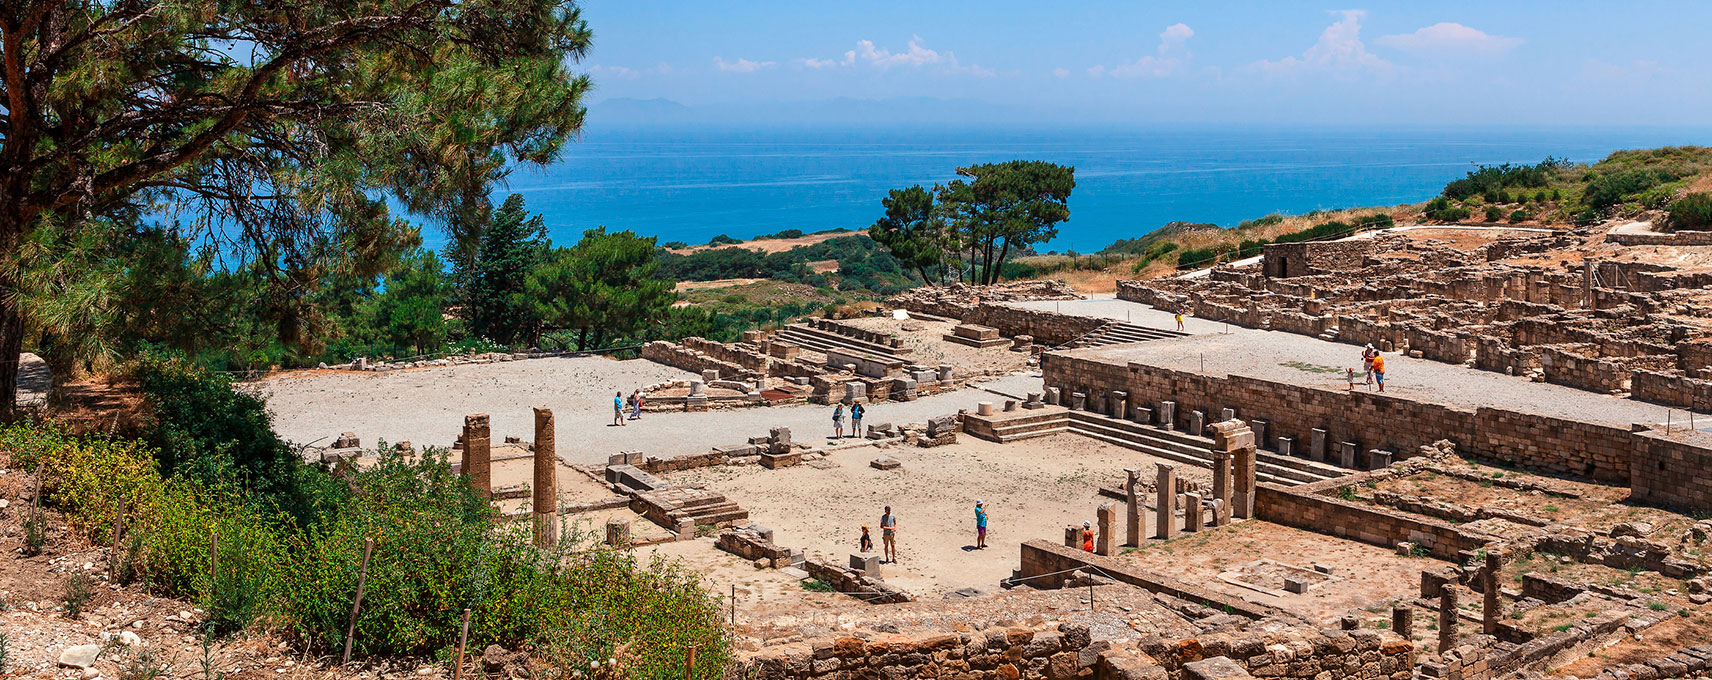 The Ancient City Of Kamiros